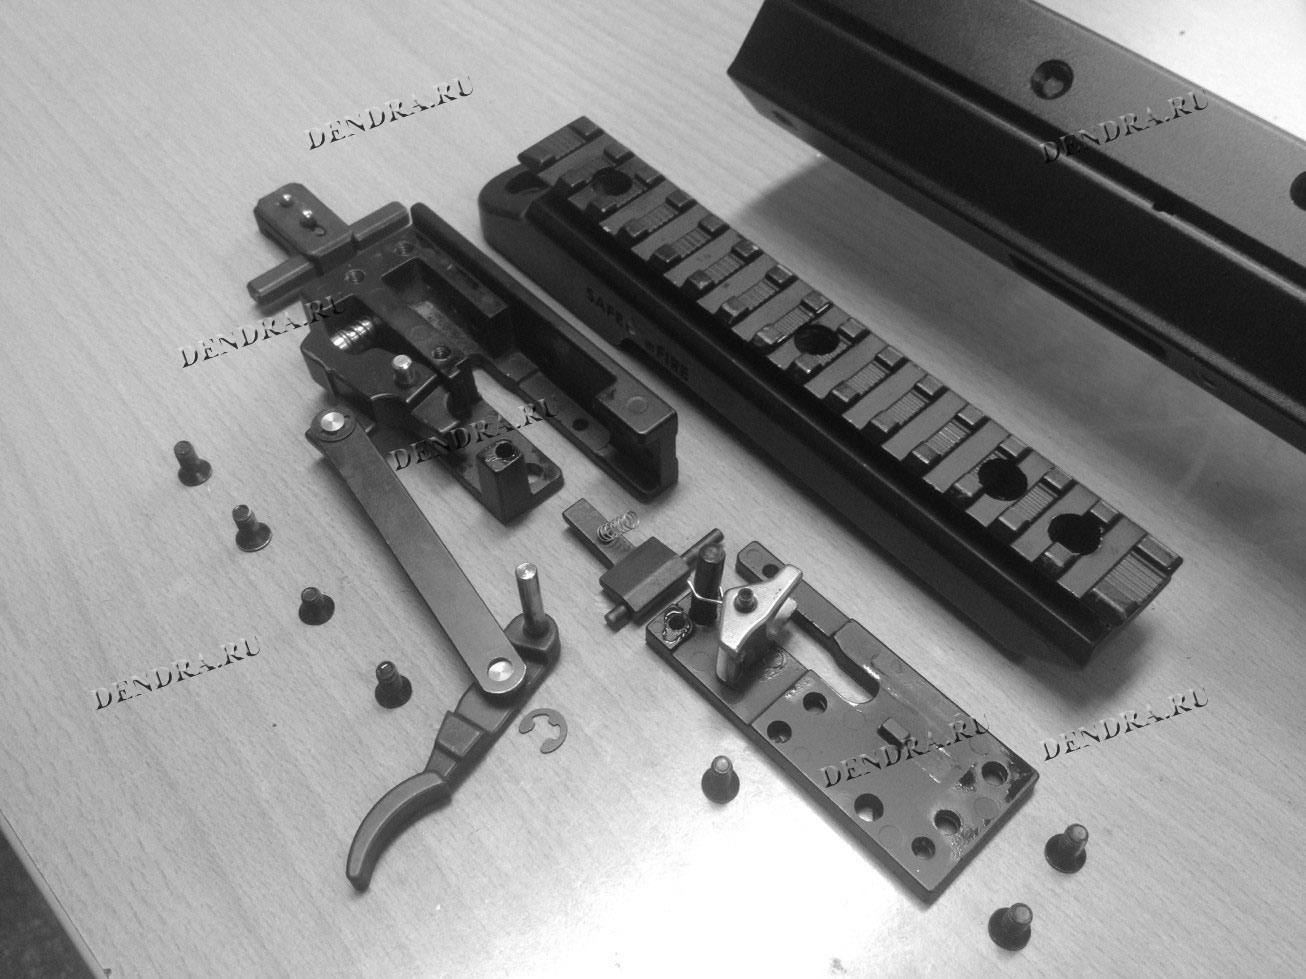 Ruger 10/22 Trigger, Sear, Firing Pin, and Lock Time Tuning Parts for Accurizing the Ruger 10/